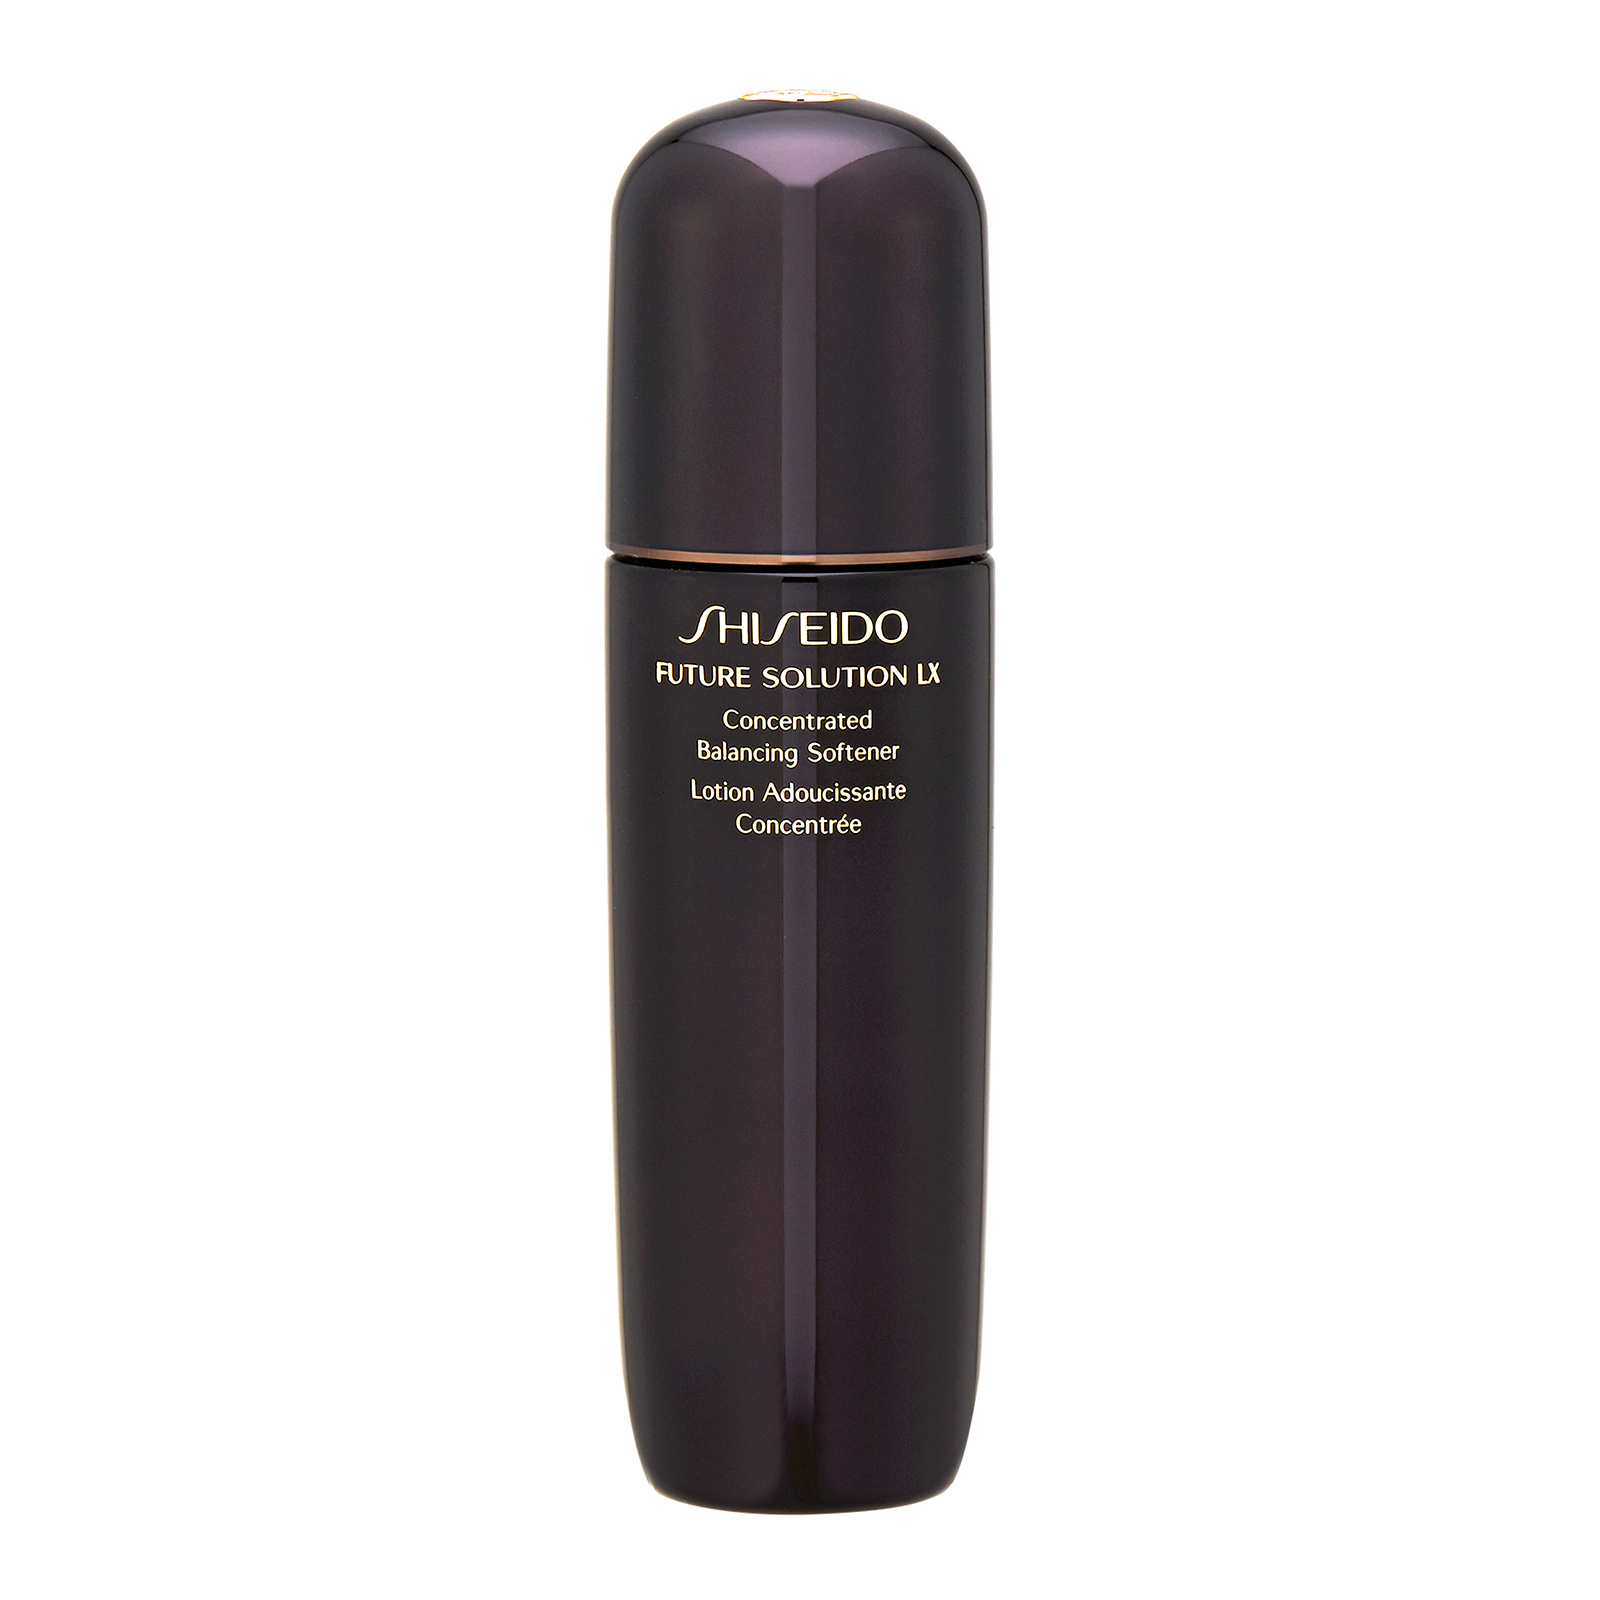 Shiseido Future Solution LX Concentrated Balancing Softener 5oz, 150ml from Cosme-De.com